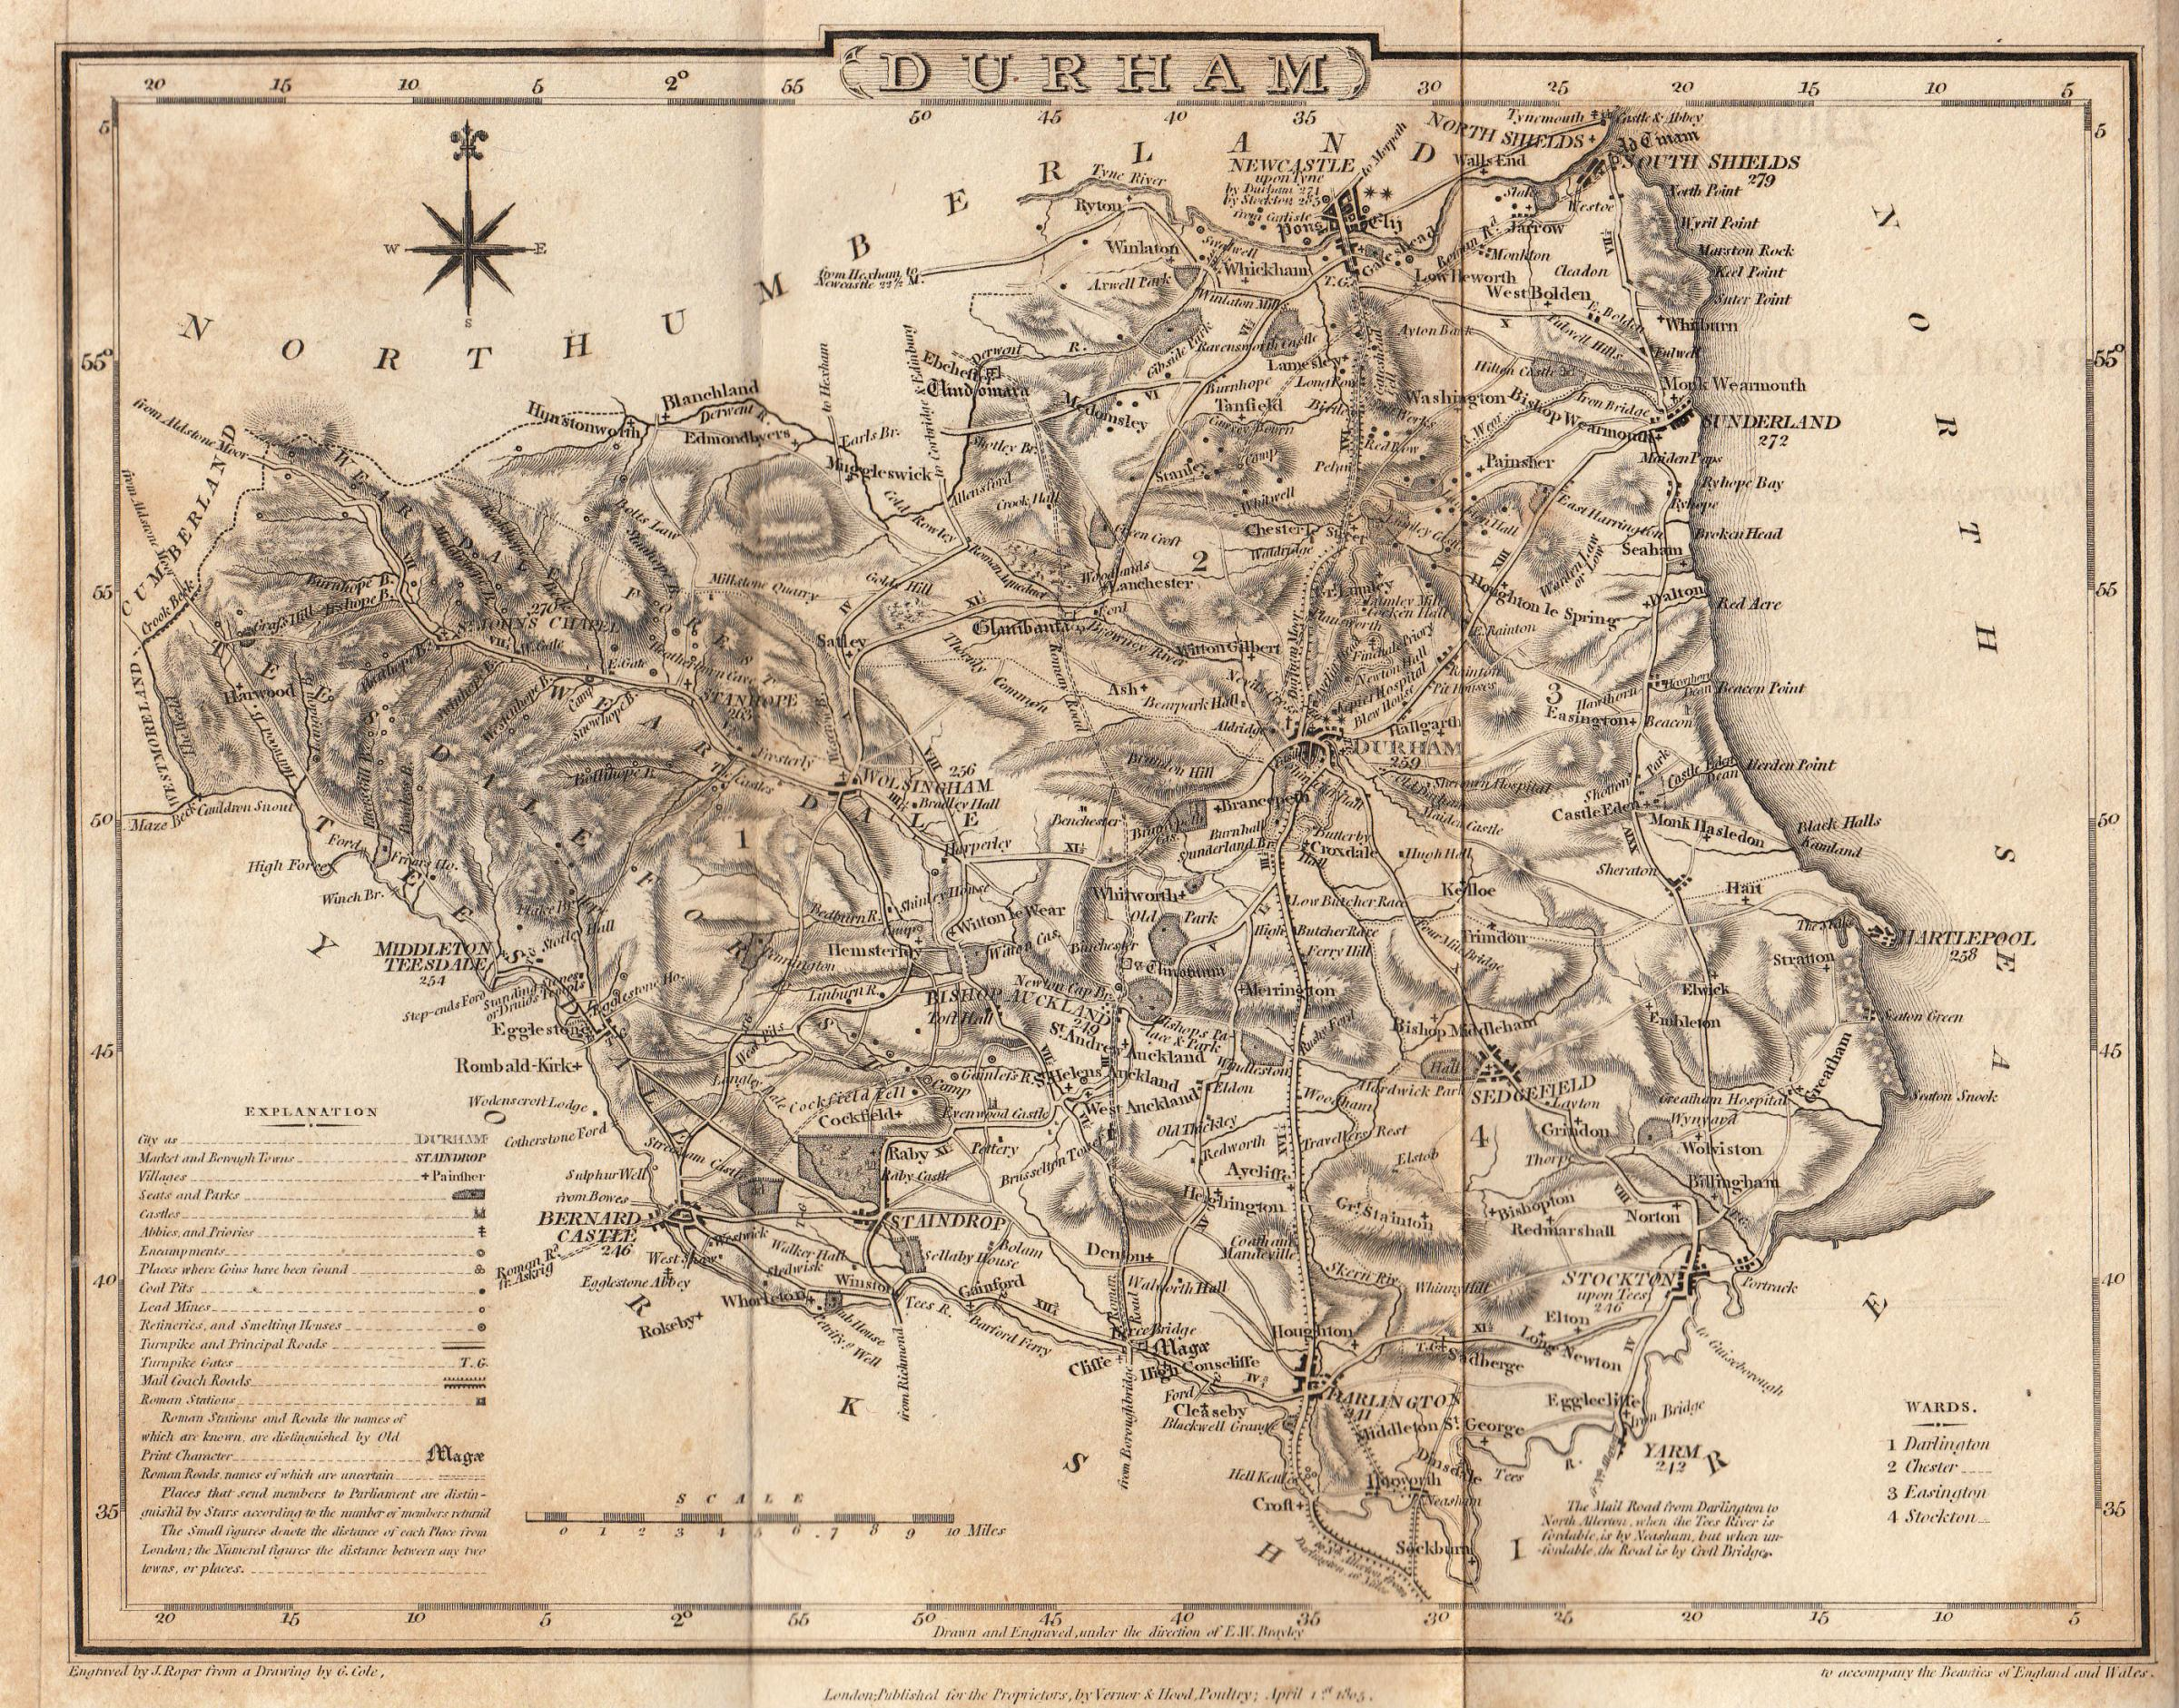 1805 map of County Durham from a book published in 1818, Durham, or General Delineations of That County, by EW Brayley and J Britton